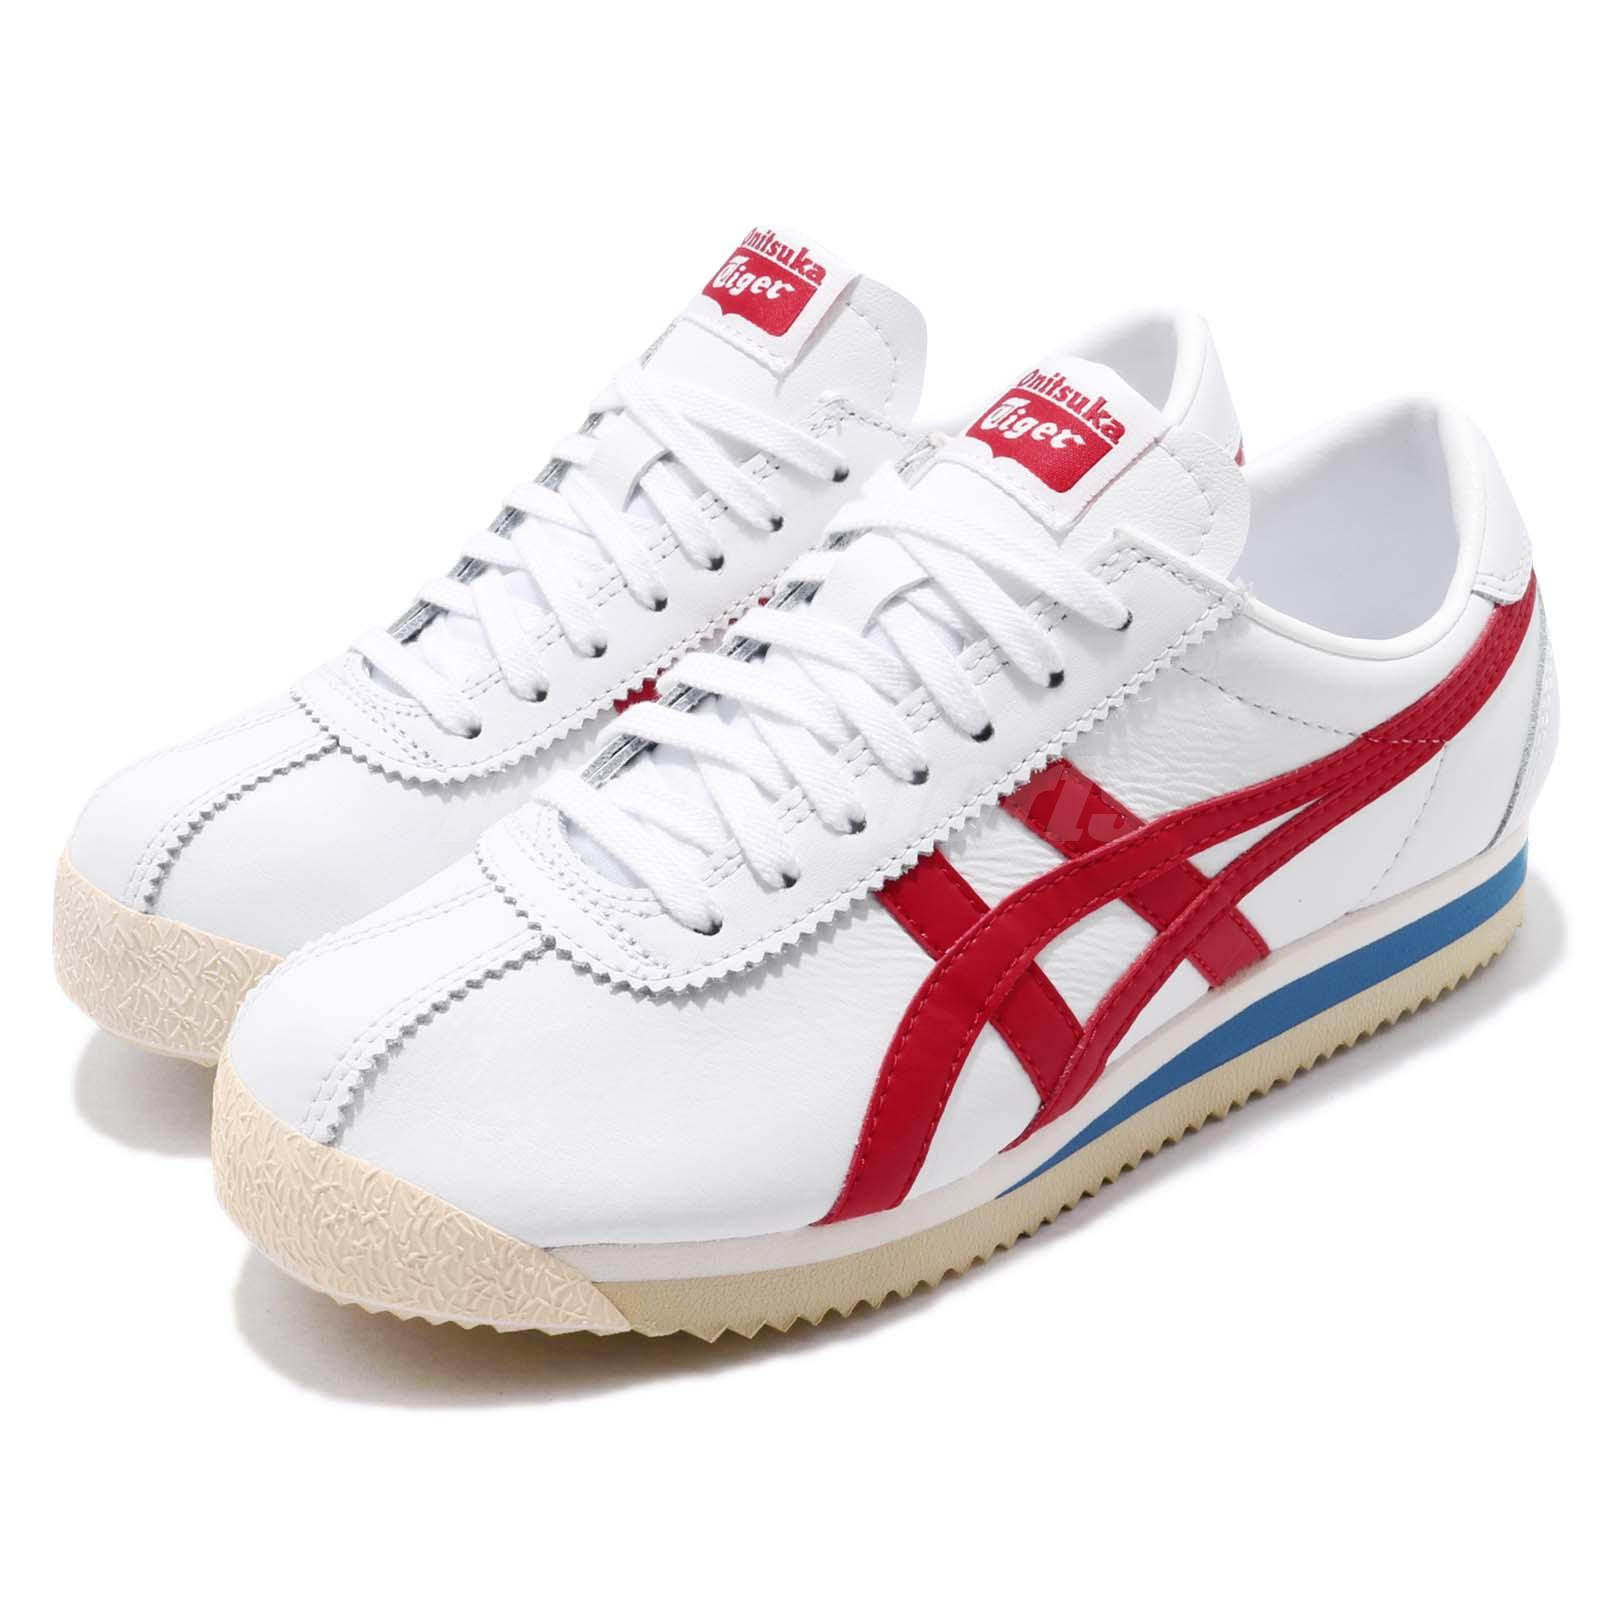 hot sale online 33fa9 96632 Details about Asics Onitsuka Tiger Corsair White Red Blue Mens Retro  Running Shoes D713L-0123